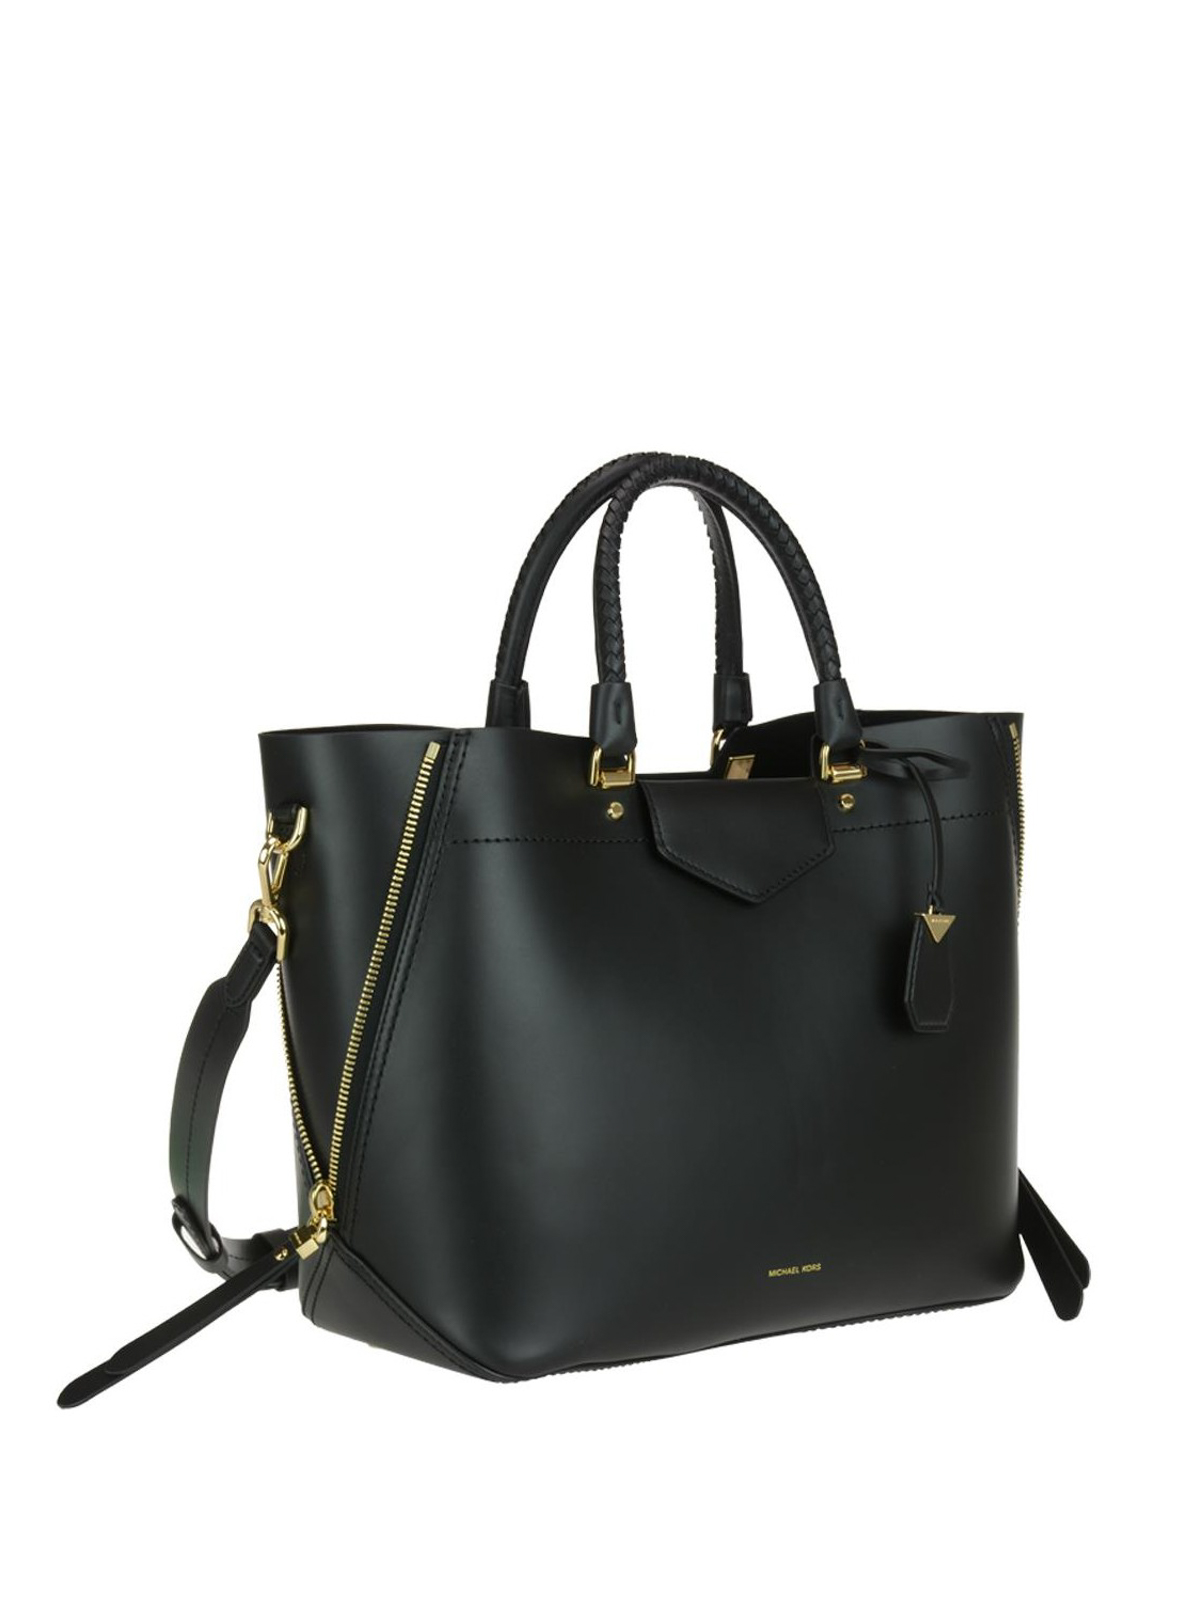 1e4ab93a19c8b Michael Kors - Blakely black leather tote - totes bags - 30S8GZLT3L001